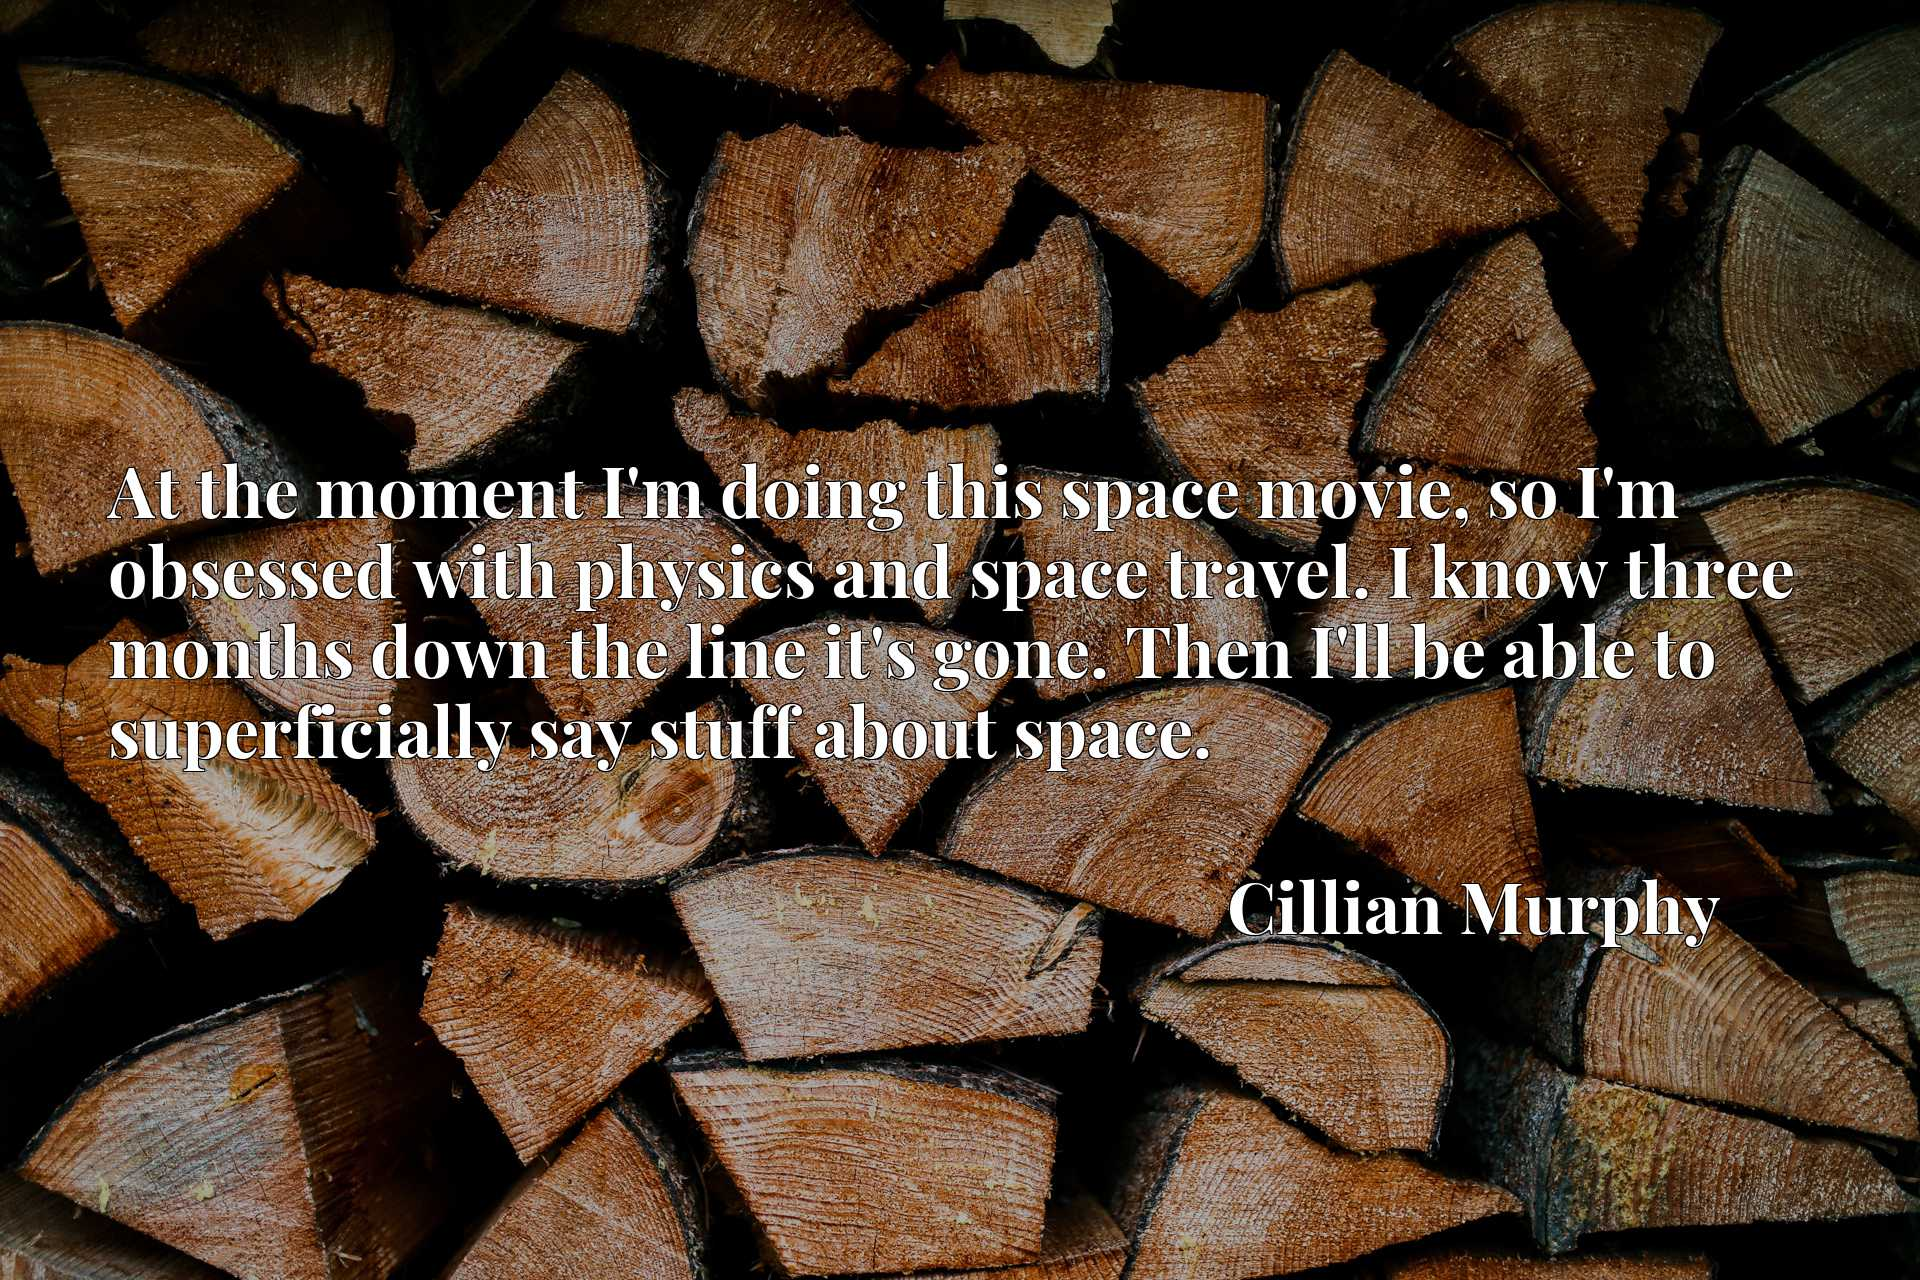 At the moment I'm doing this space movie, so I'm obsessed with physics and space travel. I know three months down the line it's gone. Then I'll be able to superficially say stuff about space.